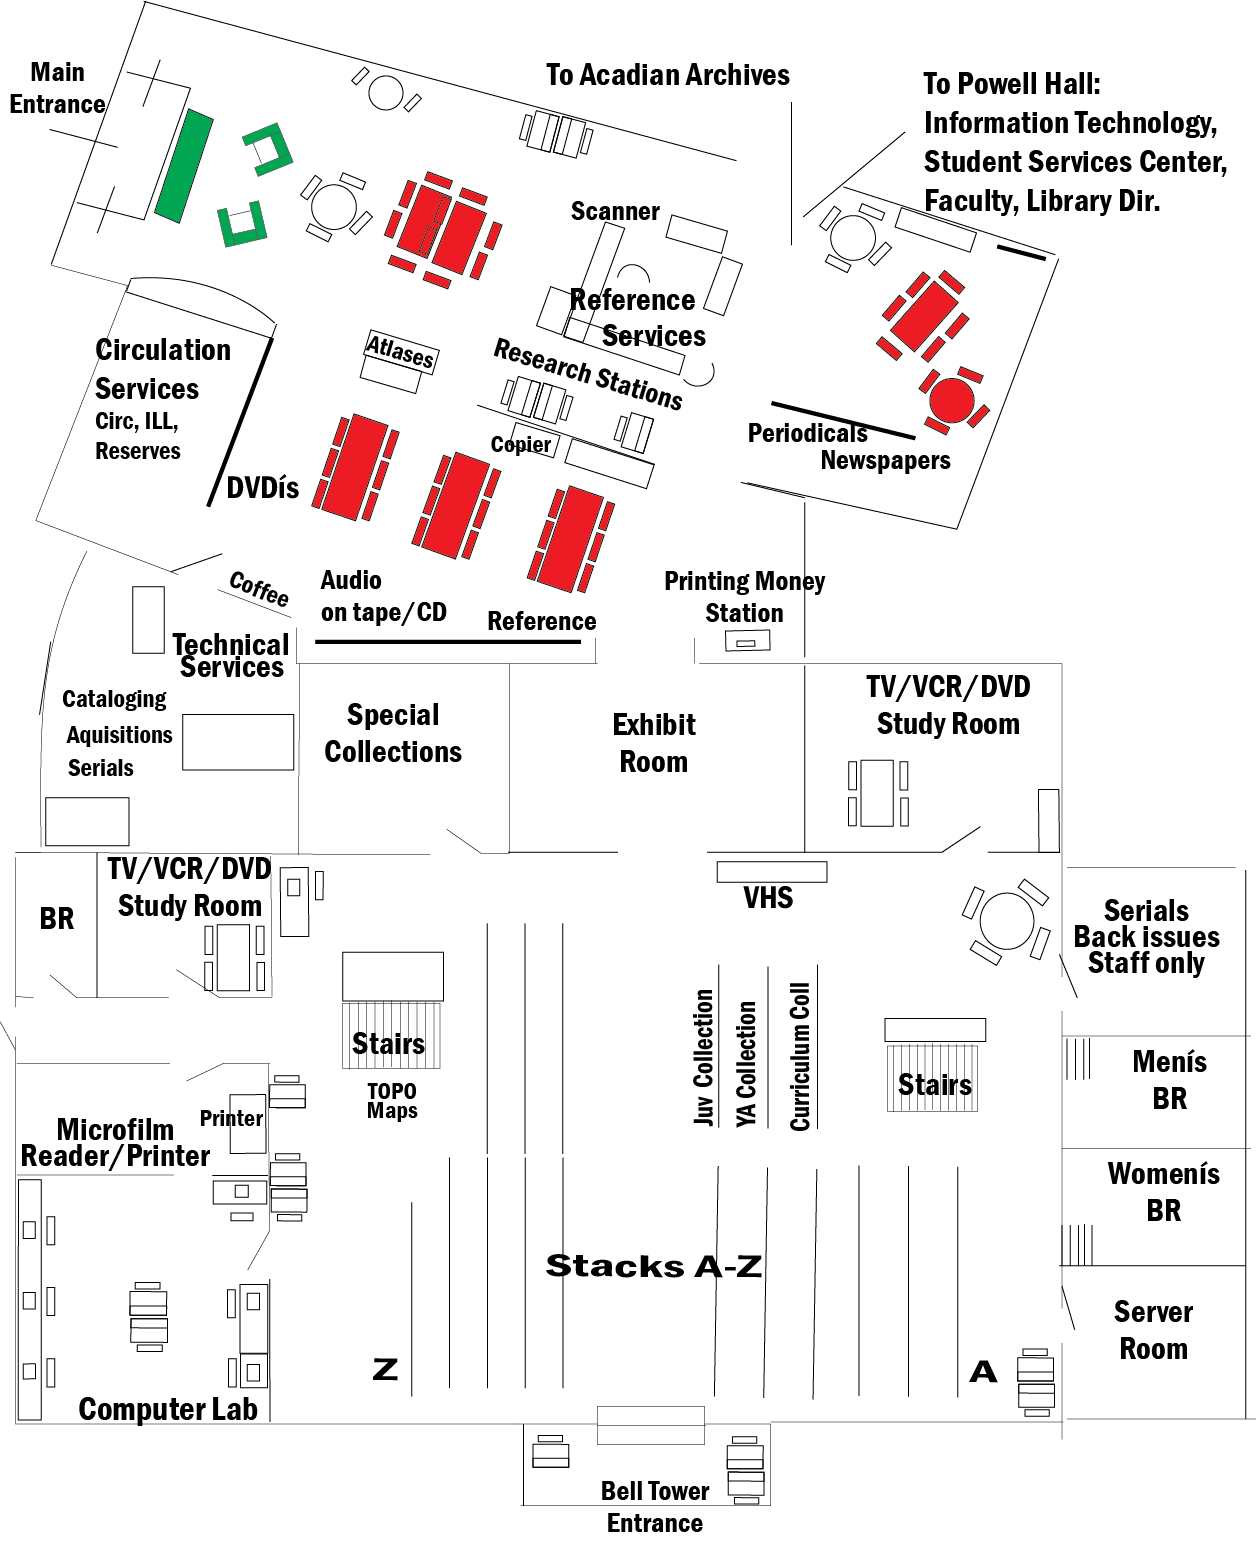 This image illustrates the downstairs layout of Blake Library. Please use the printer-friendly version link for an accessible PDF of this map.